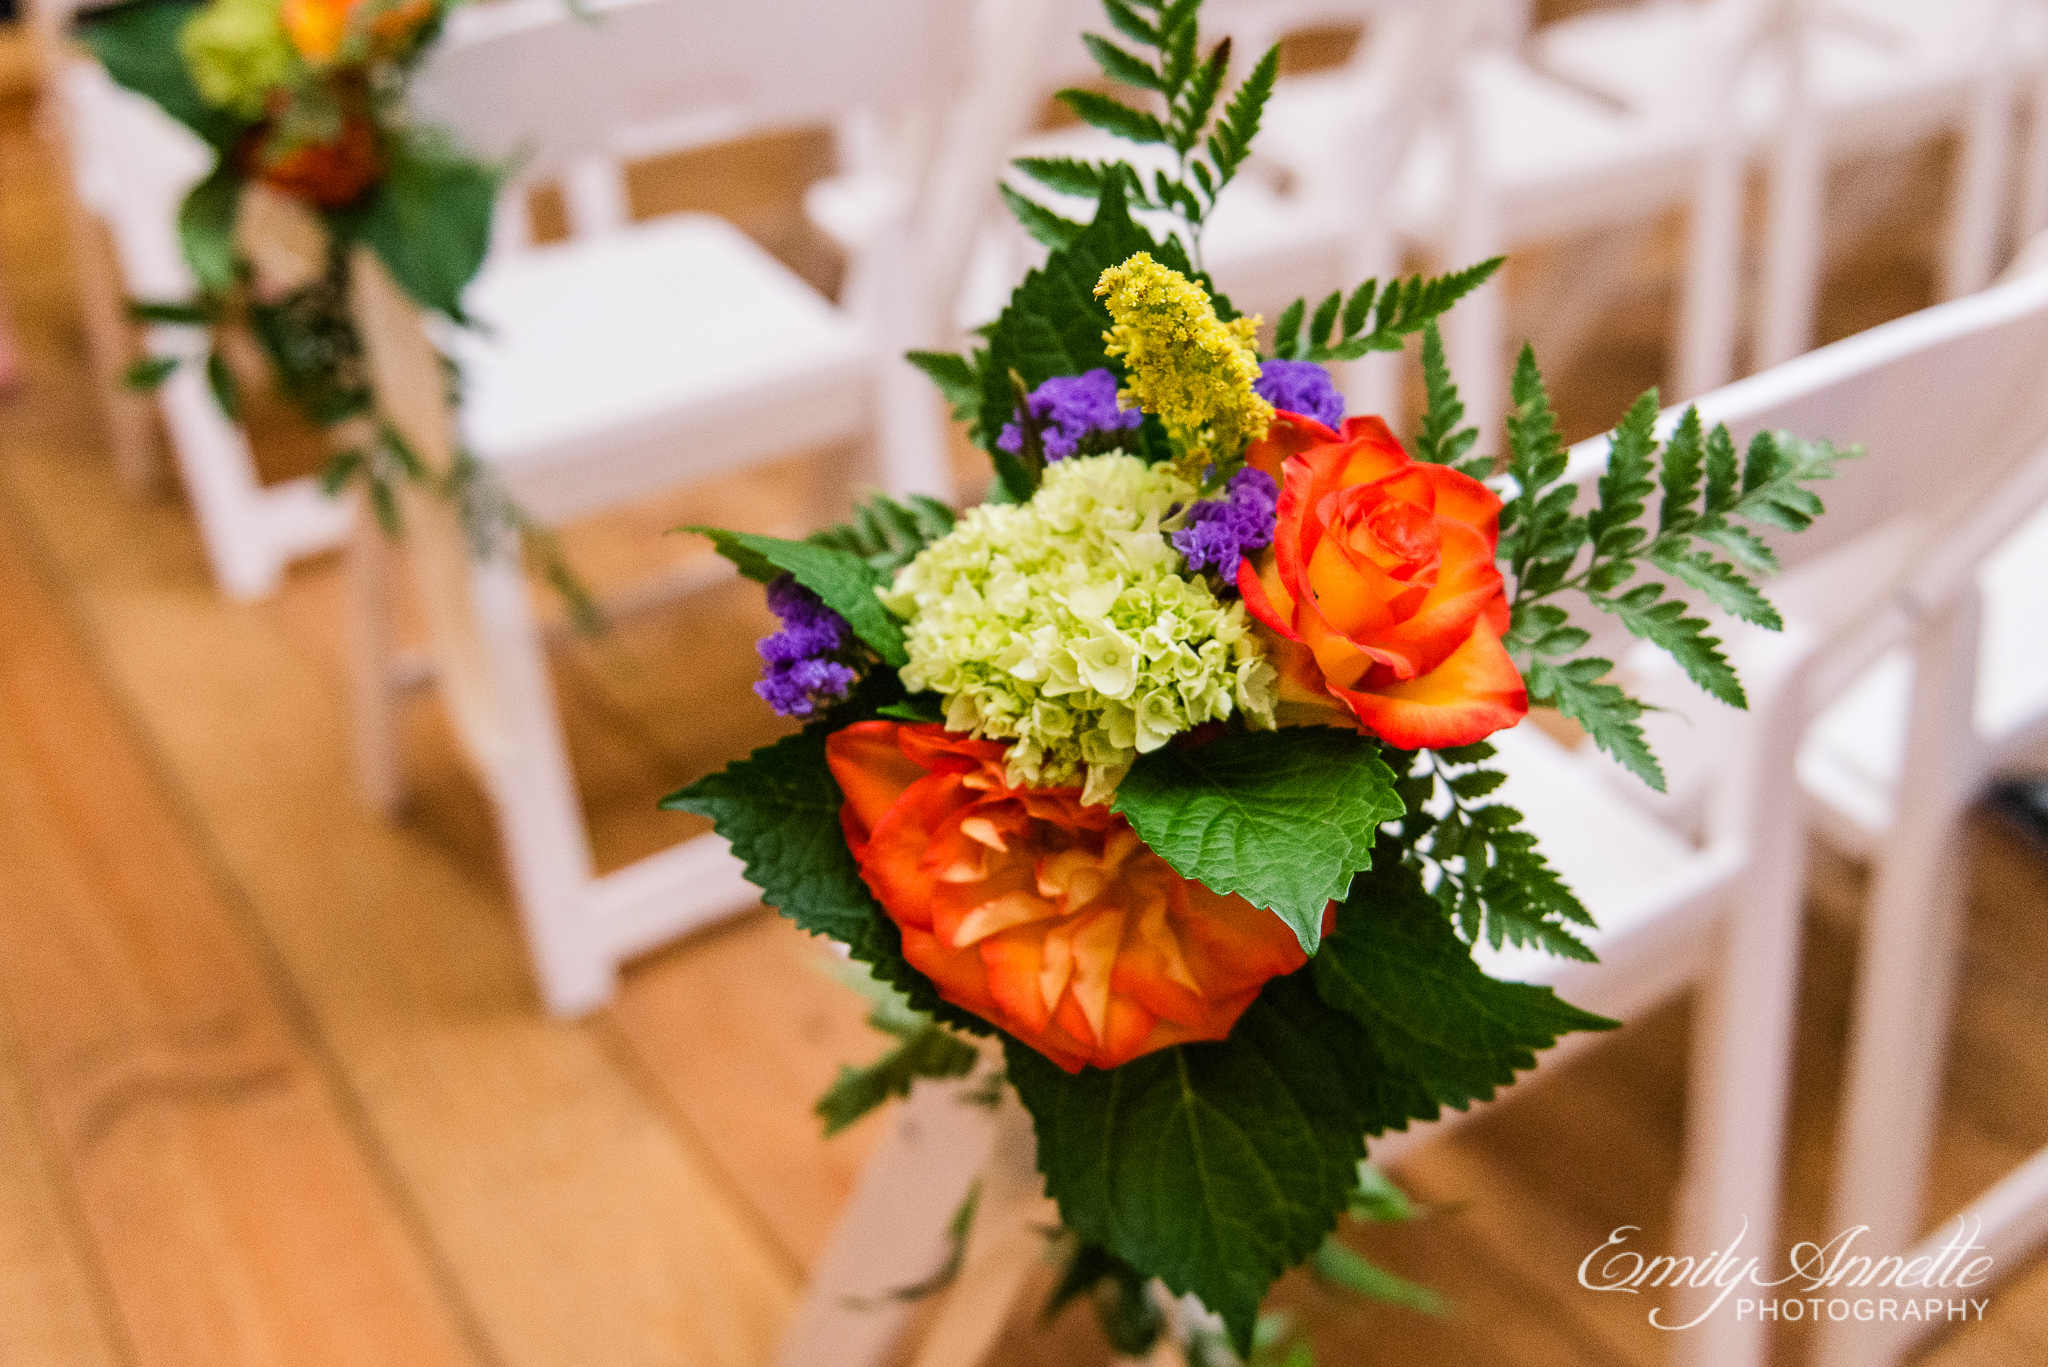 Fall flowers decorating the end of a row of chairs inside the wedding site during a country wedding at Amber Grove near Richmond, Virginia